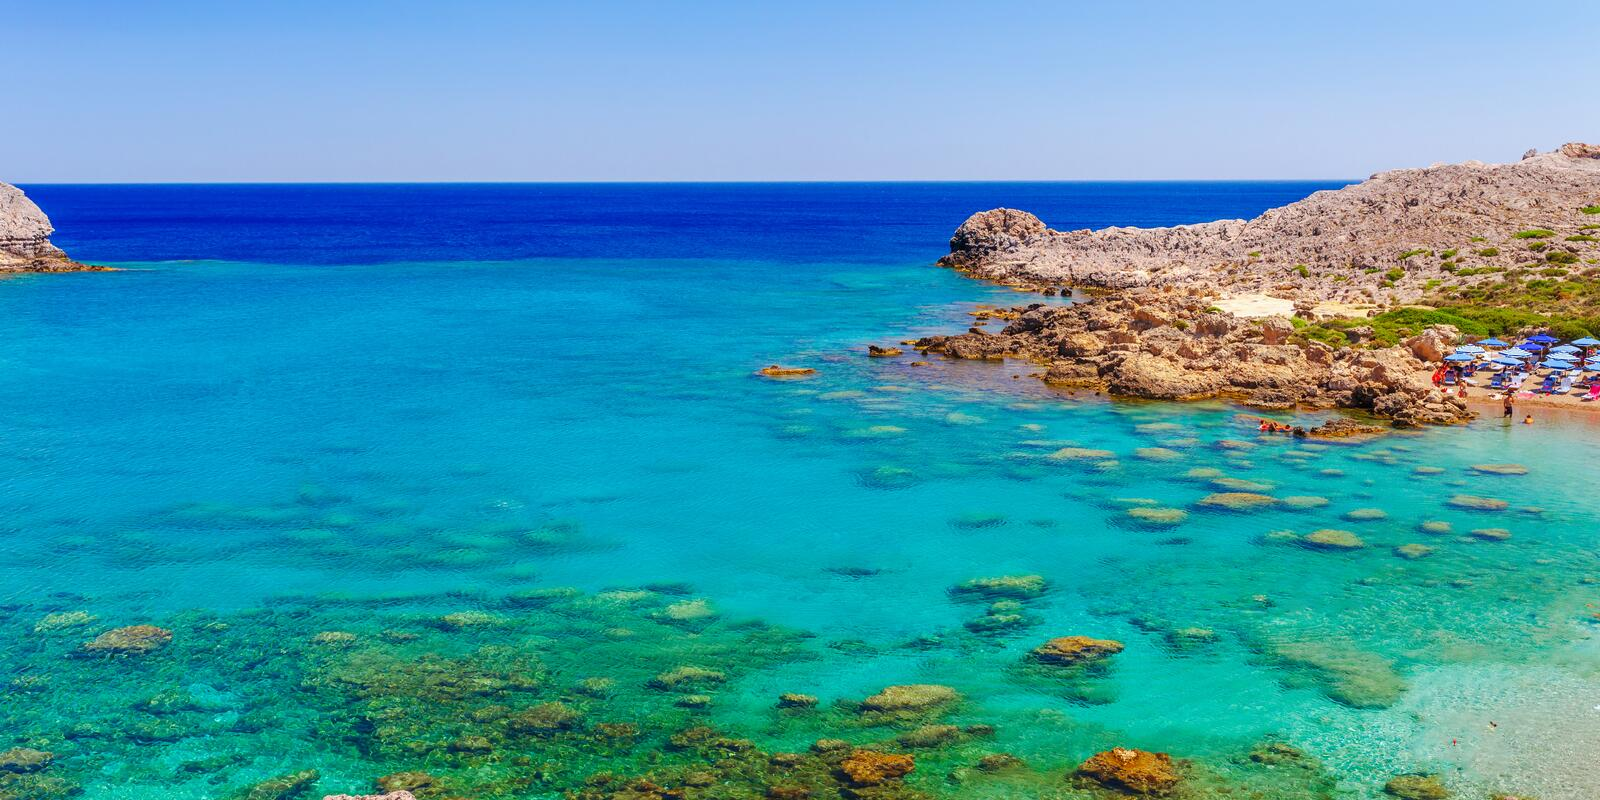 Sailing for the Dodecanese, from Kos to Samos